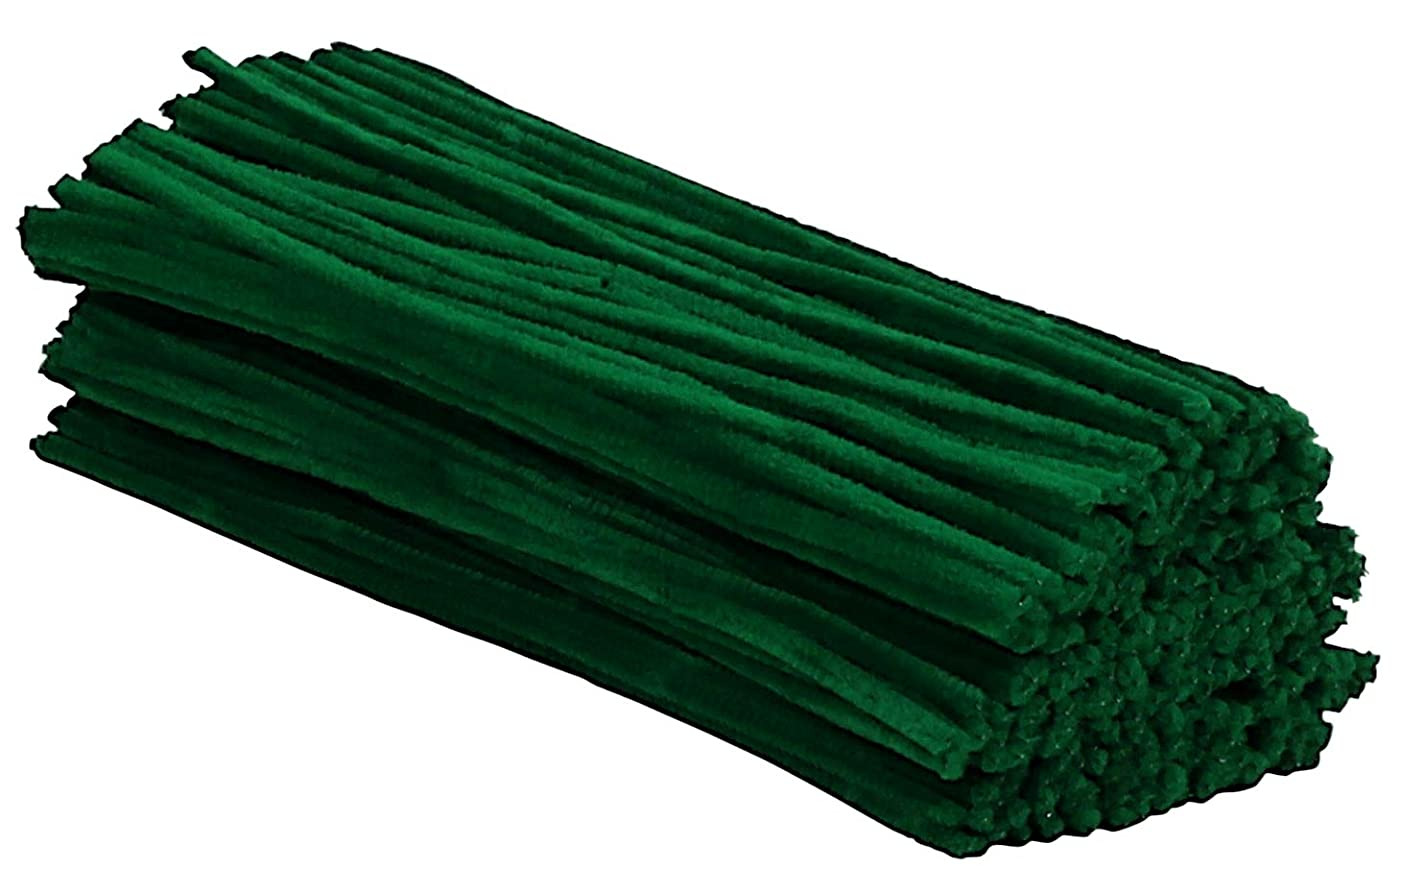 Iconikal Pipe Cleaners Craft Chenille Stems, 300-Count, Green